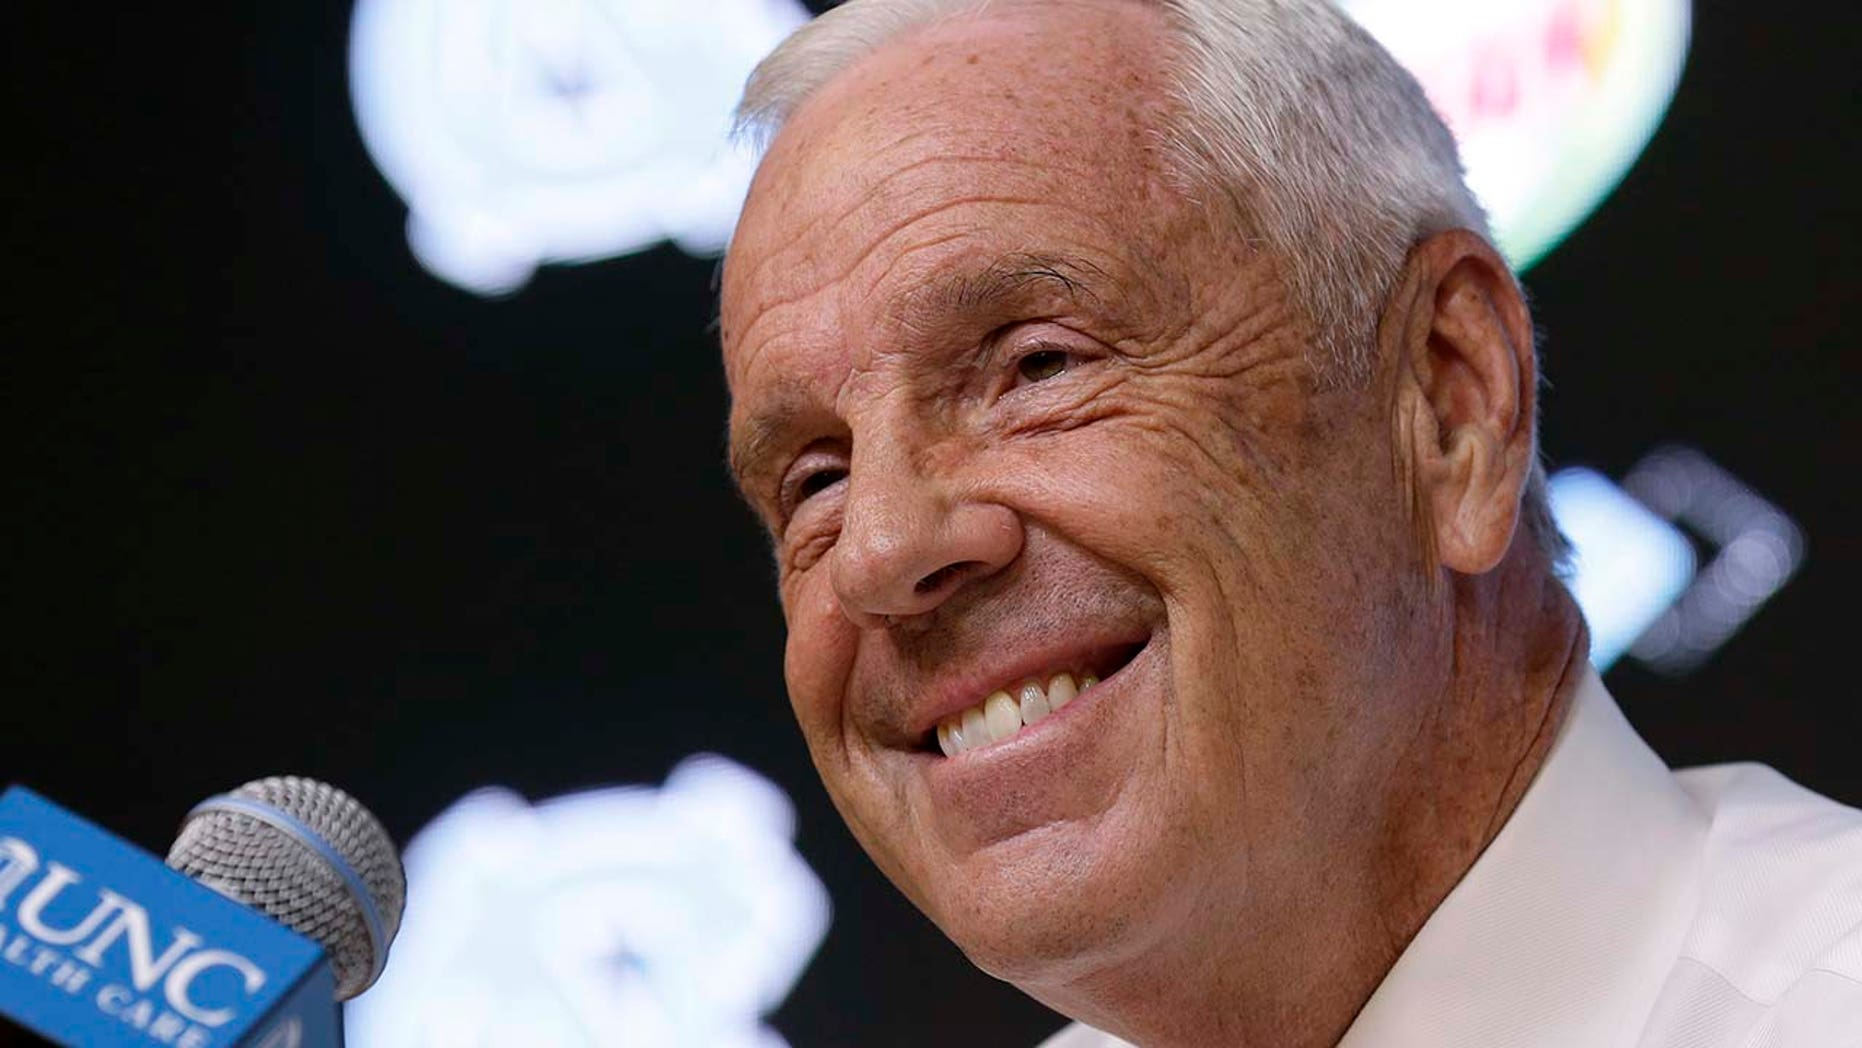 North Carolina coach Roy Williams speaks to reporters during the team's NCAA college basketball media day in Chapel Hill, N.C., Oct. 9, 2018.